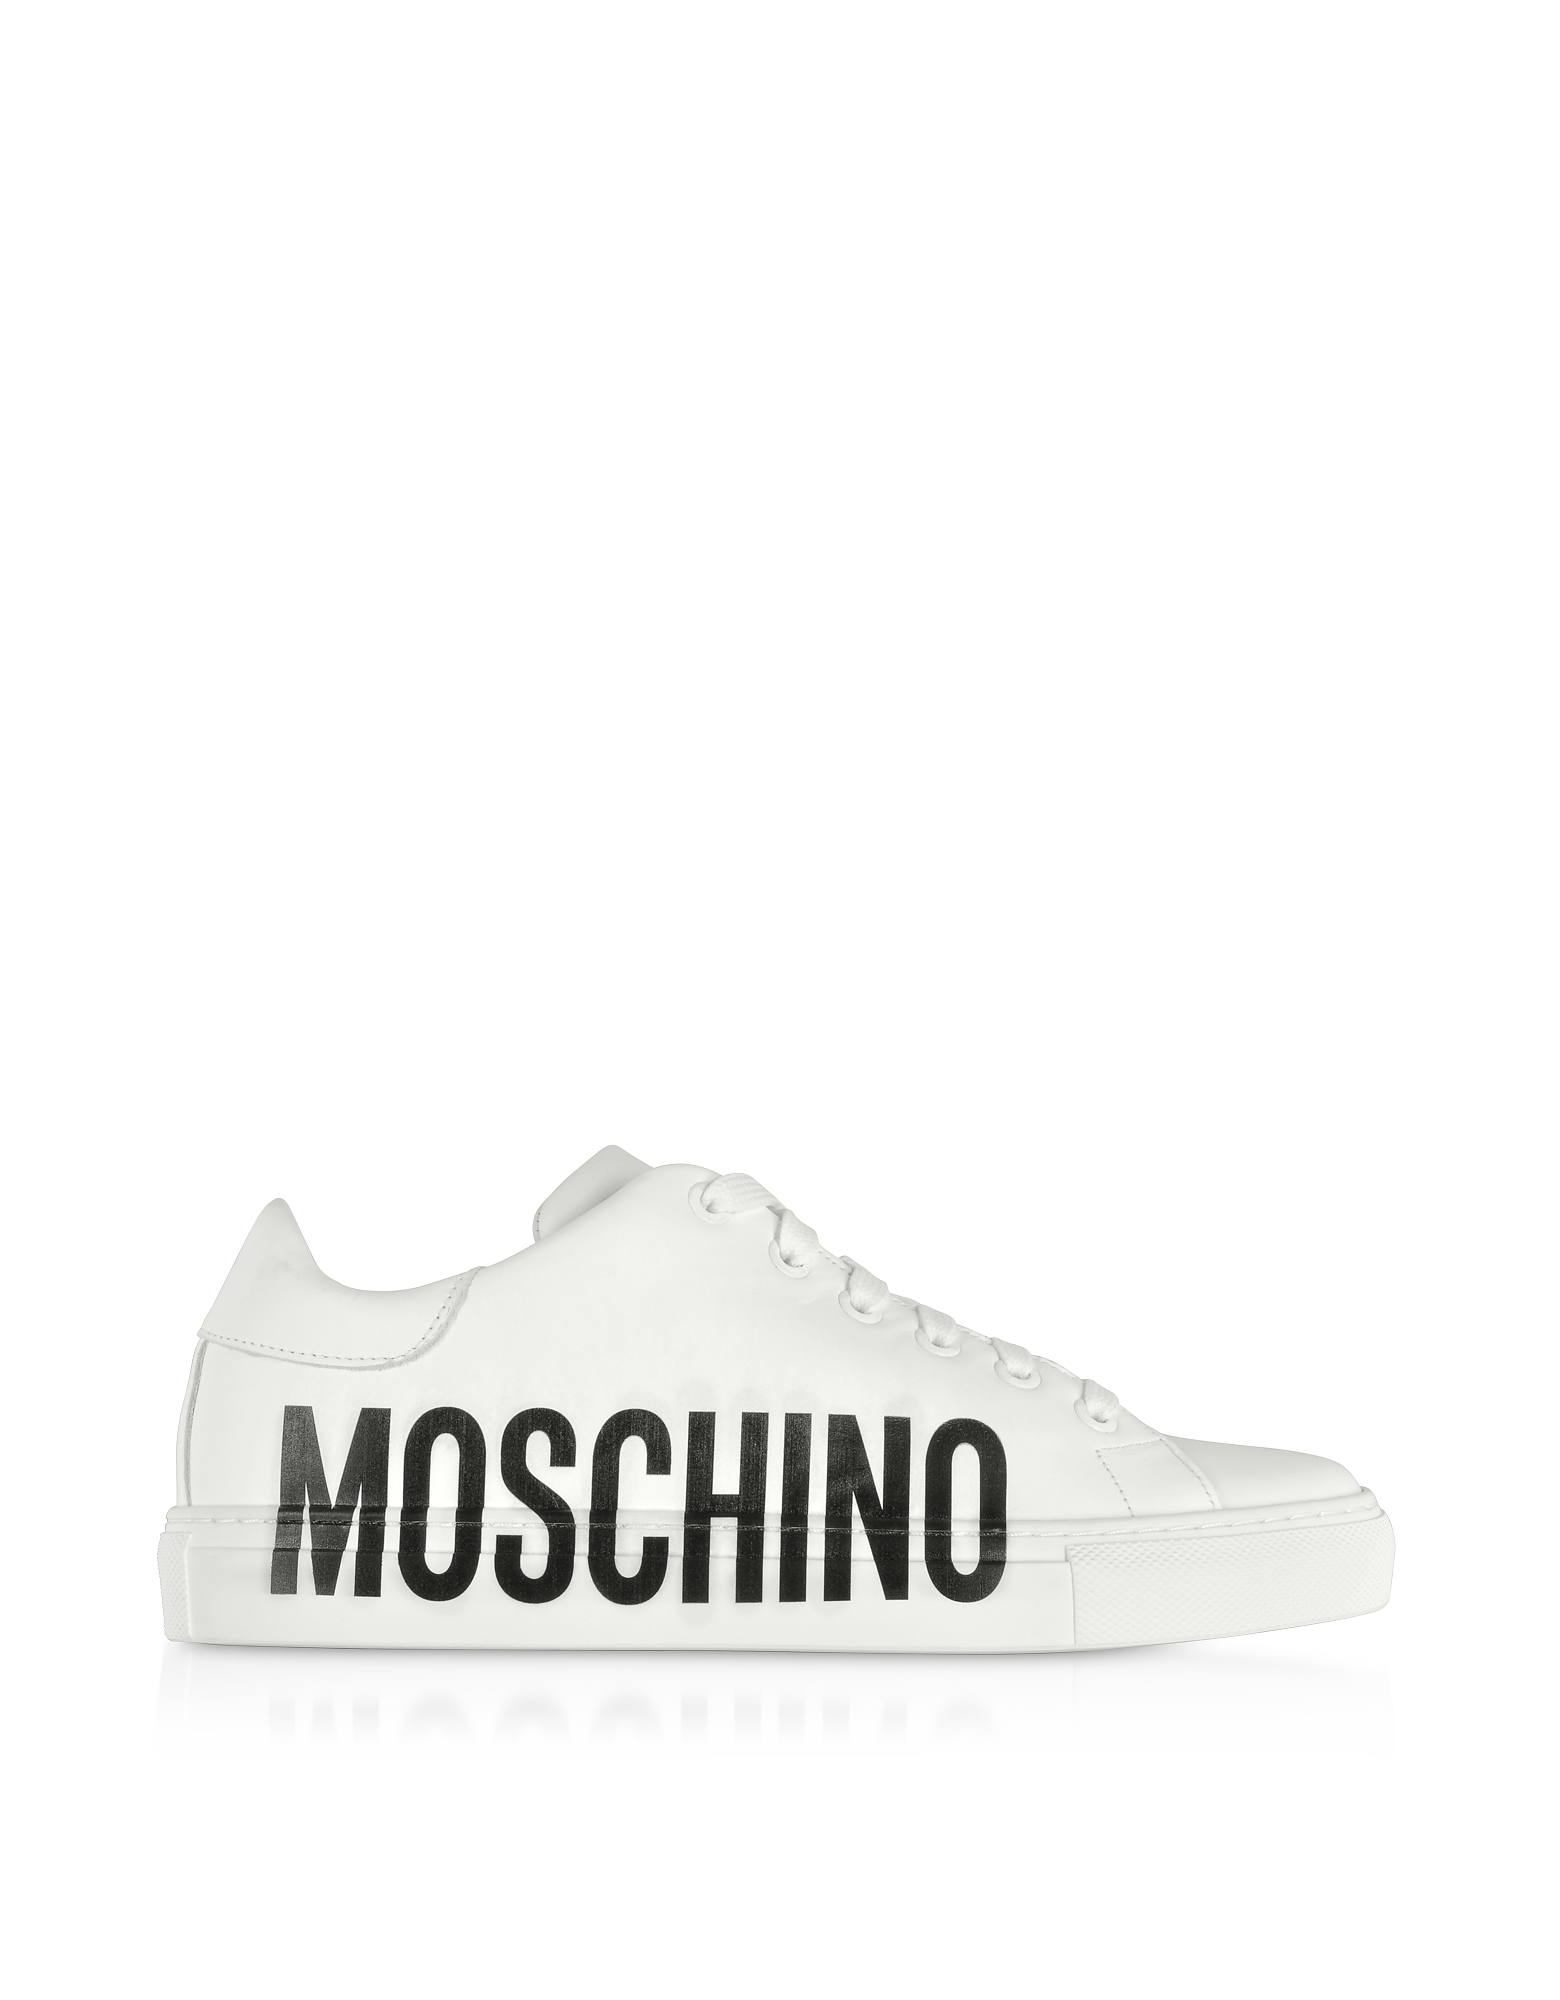 Moschino Shoes, Logo Print White Leather Sneakers